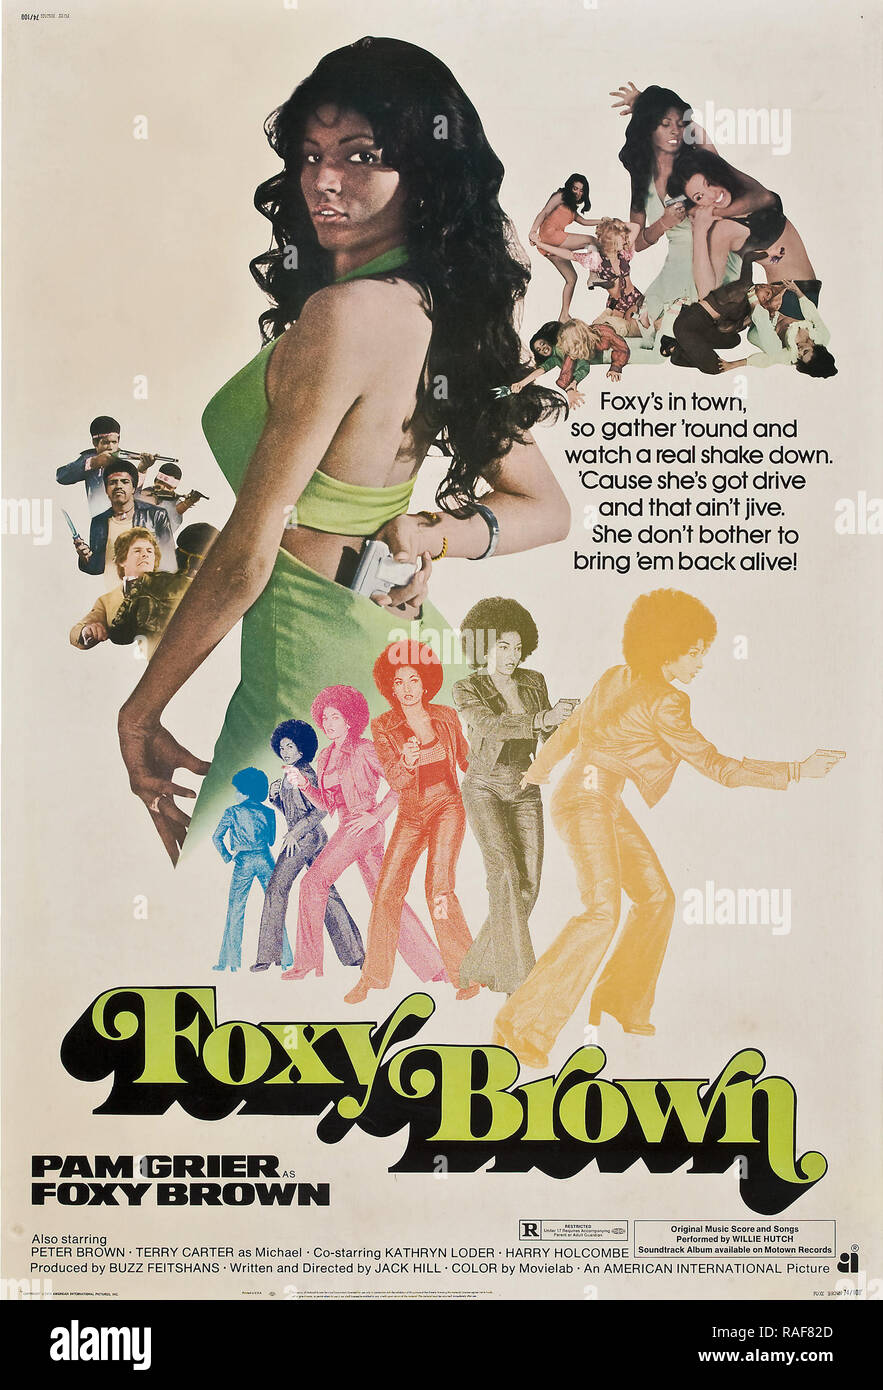 Foxy Brown (American International, 1974), Poster  Pam Grier  File Reference # 33636_814THA - Stock Image